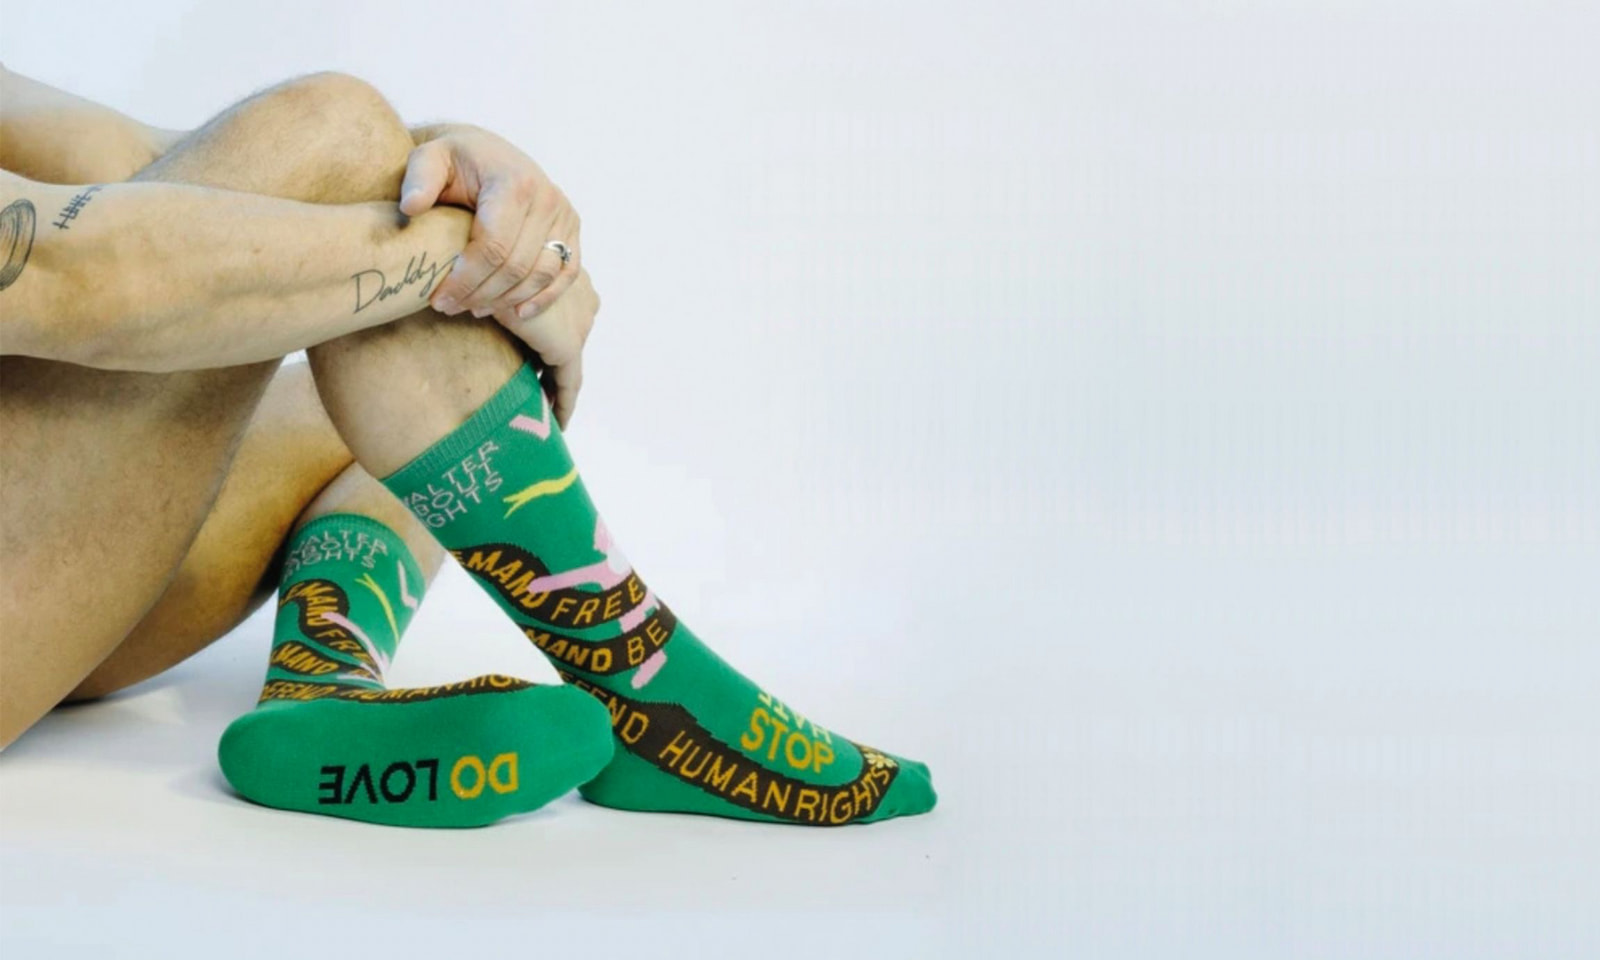 Wearing Your Heart on Your Sleeve: Walter Van Beirendonck's Colorful and Activist Designs